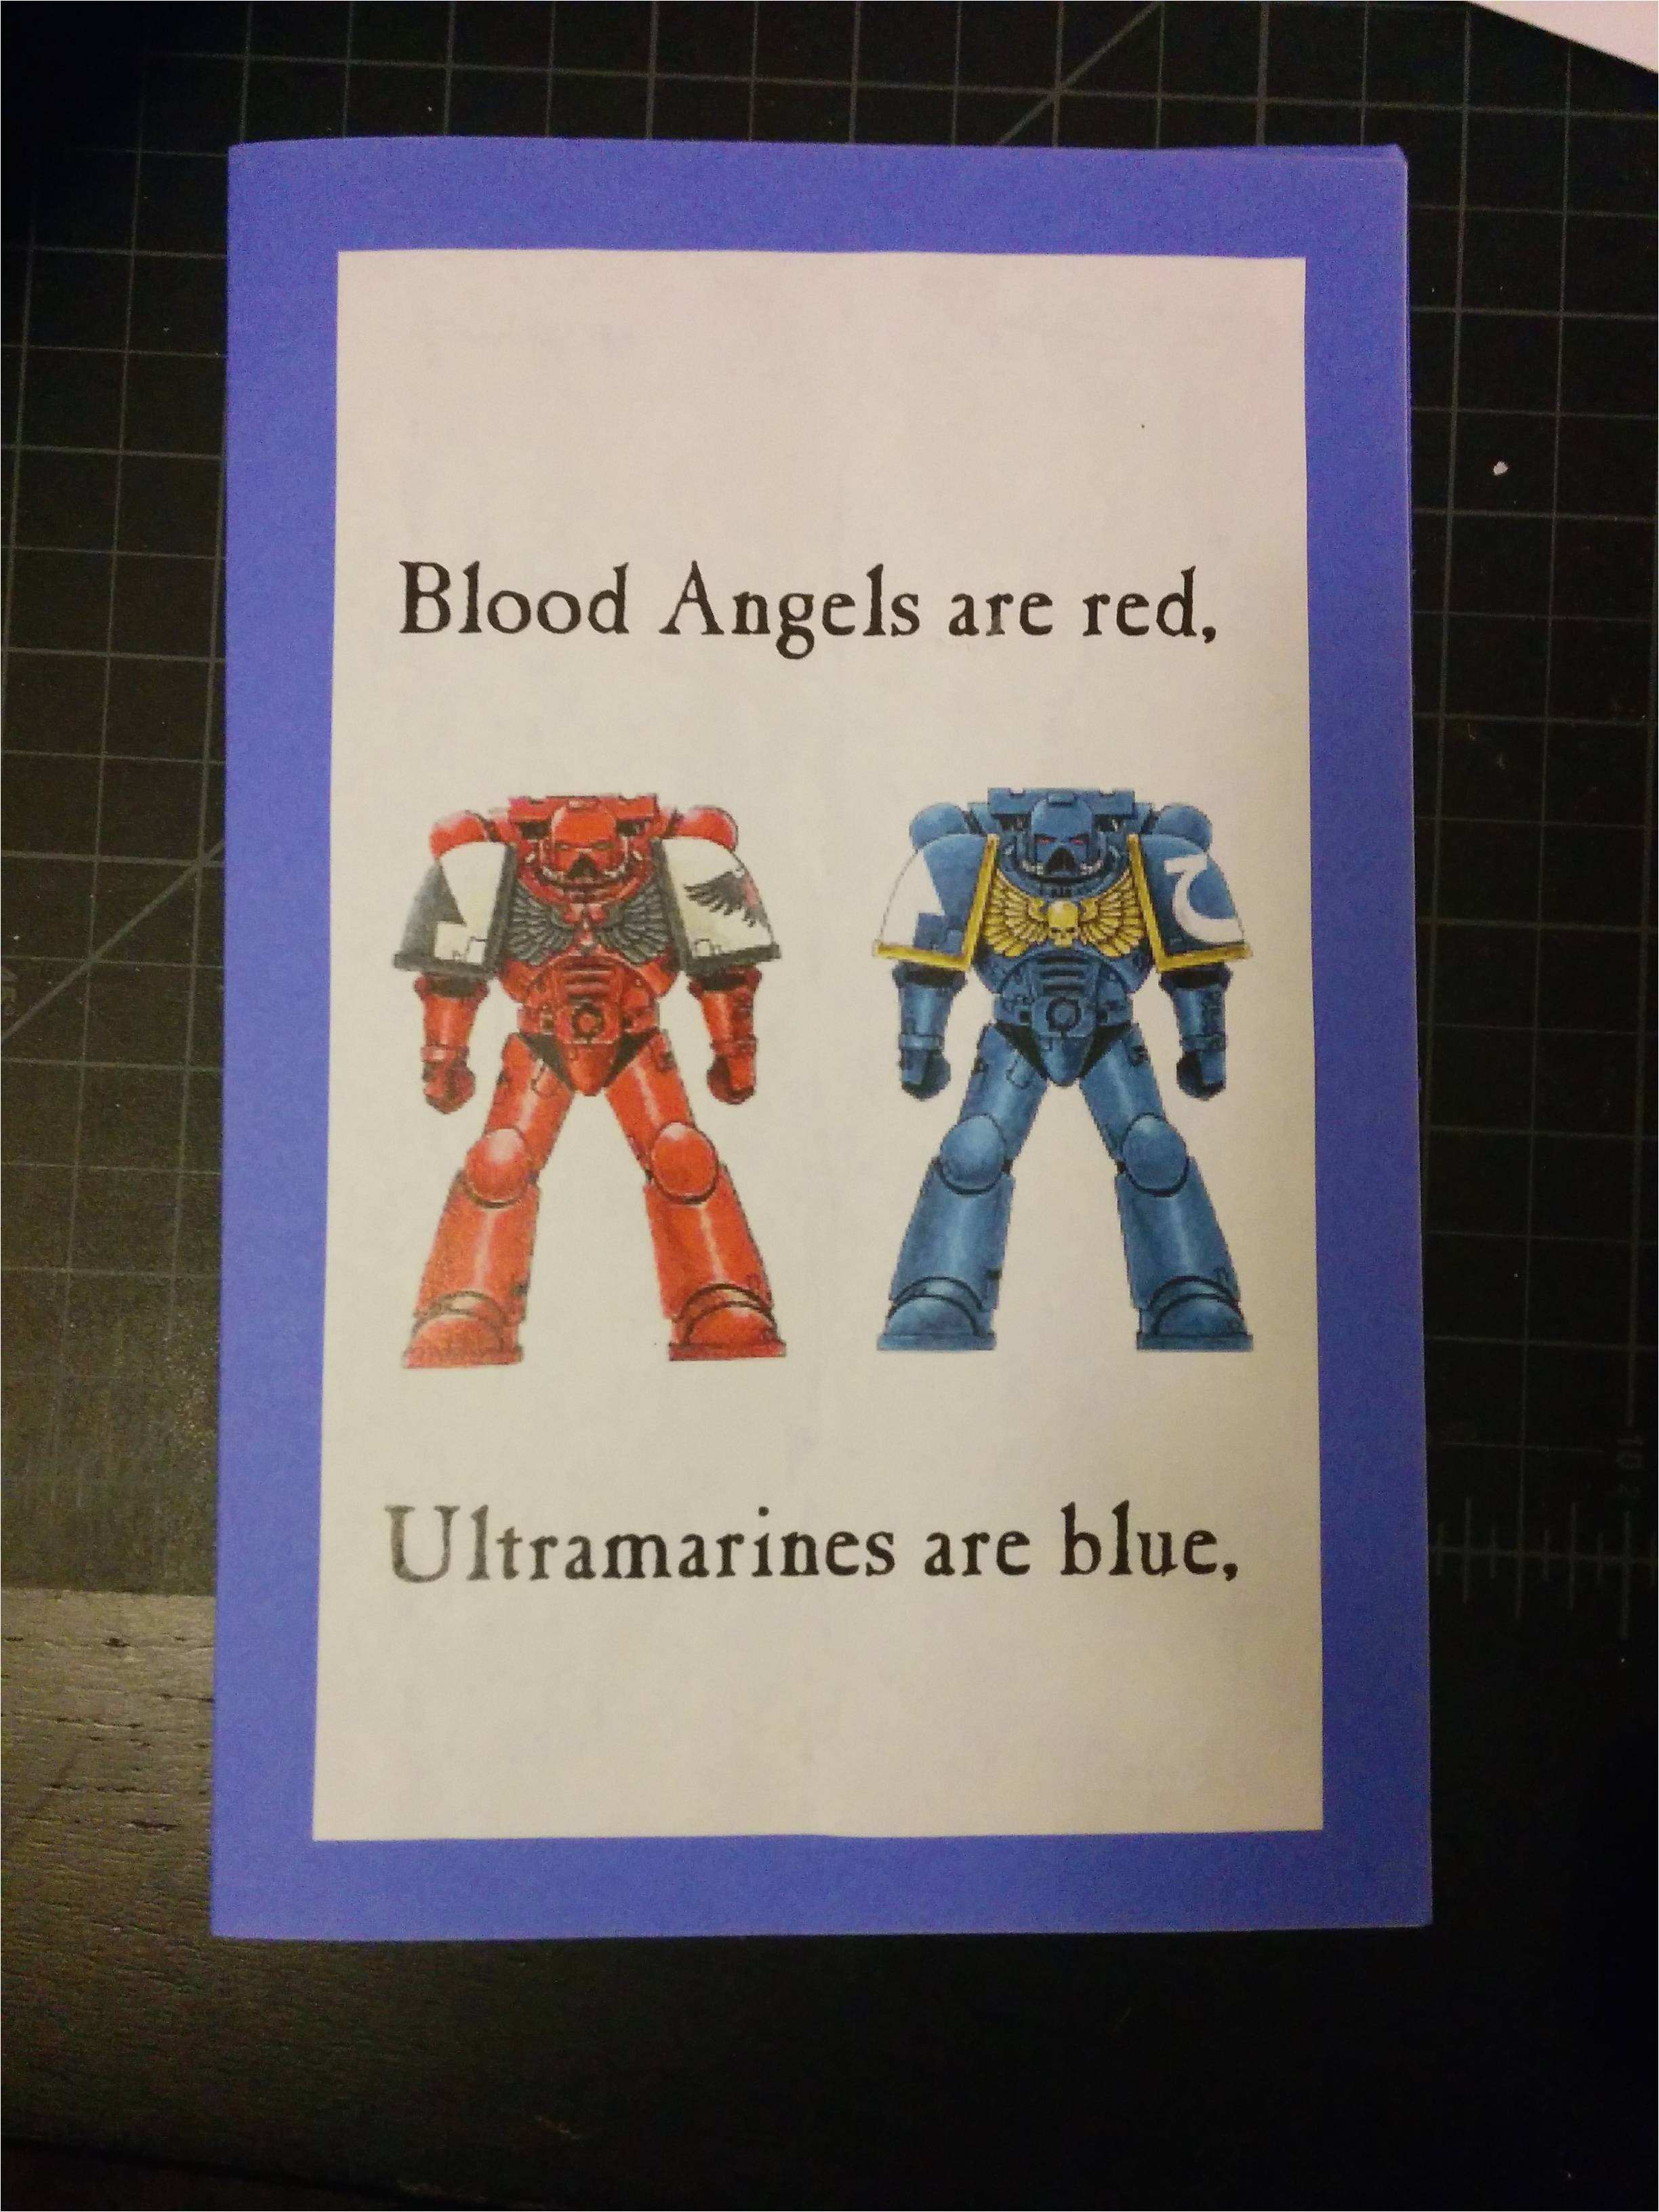 40k birthday card my friends gave me today